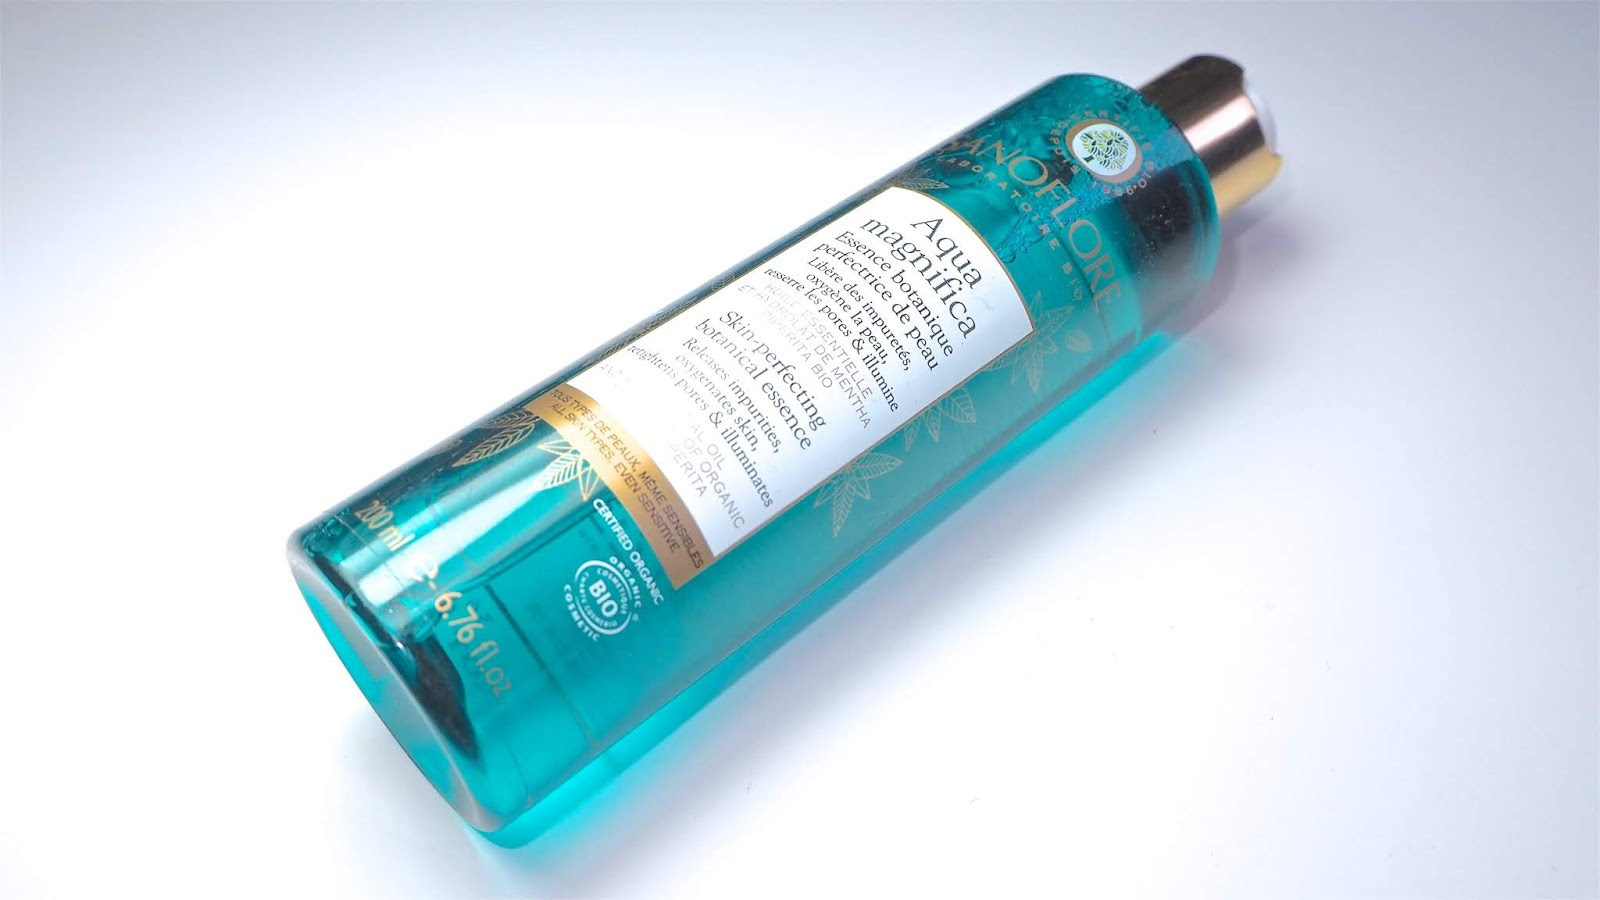 Aqua Magnifica Peppermint Skin-Perfecting Purifying Toner